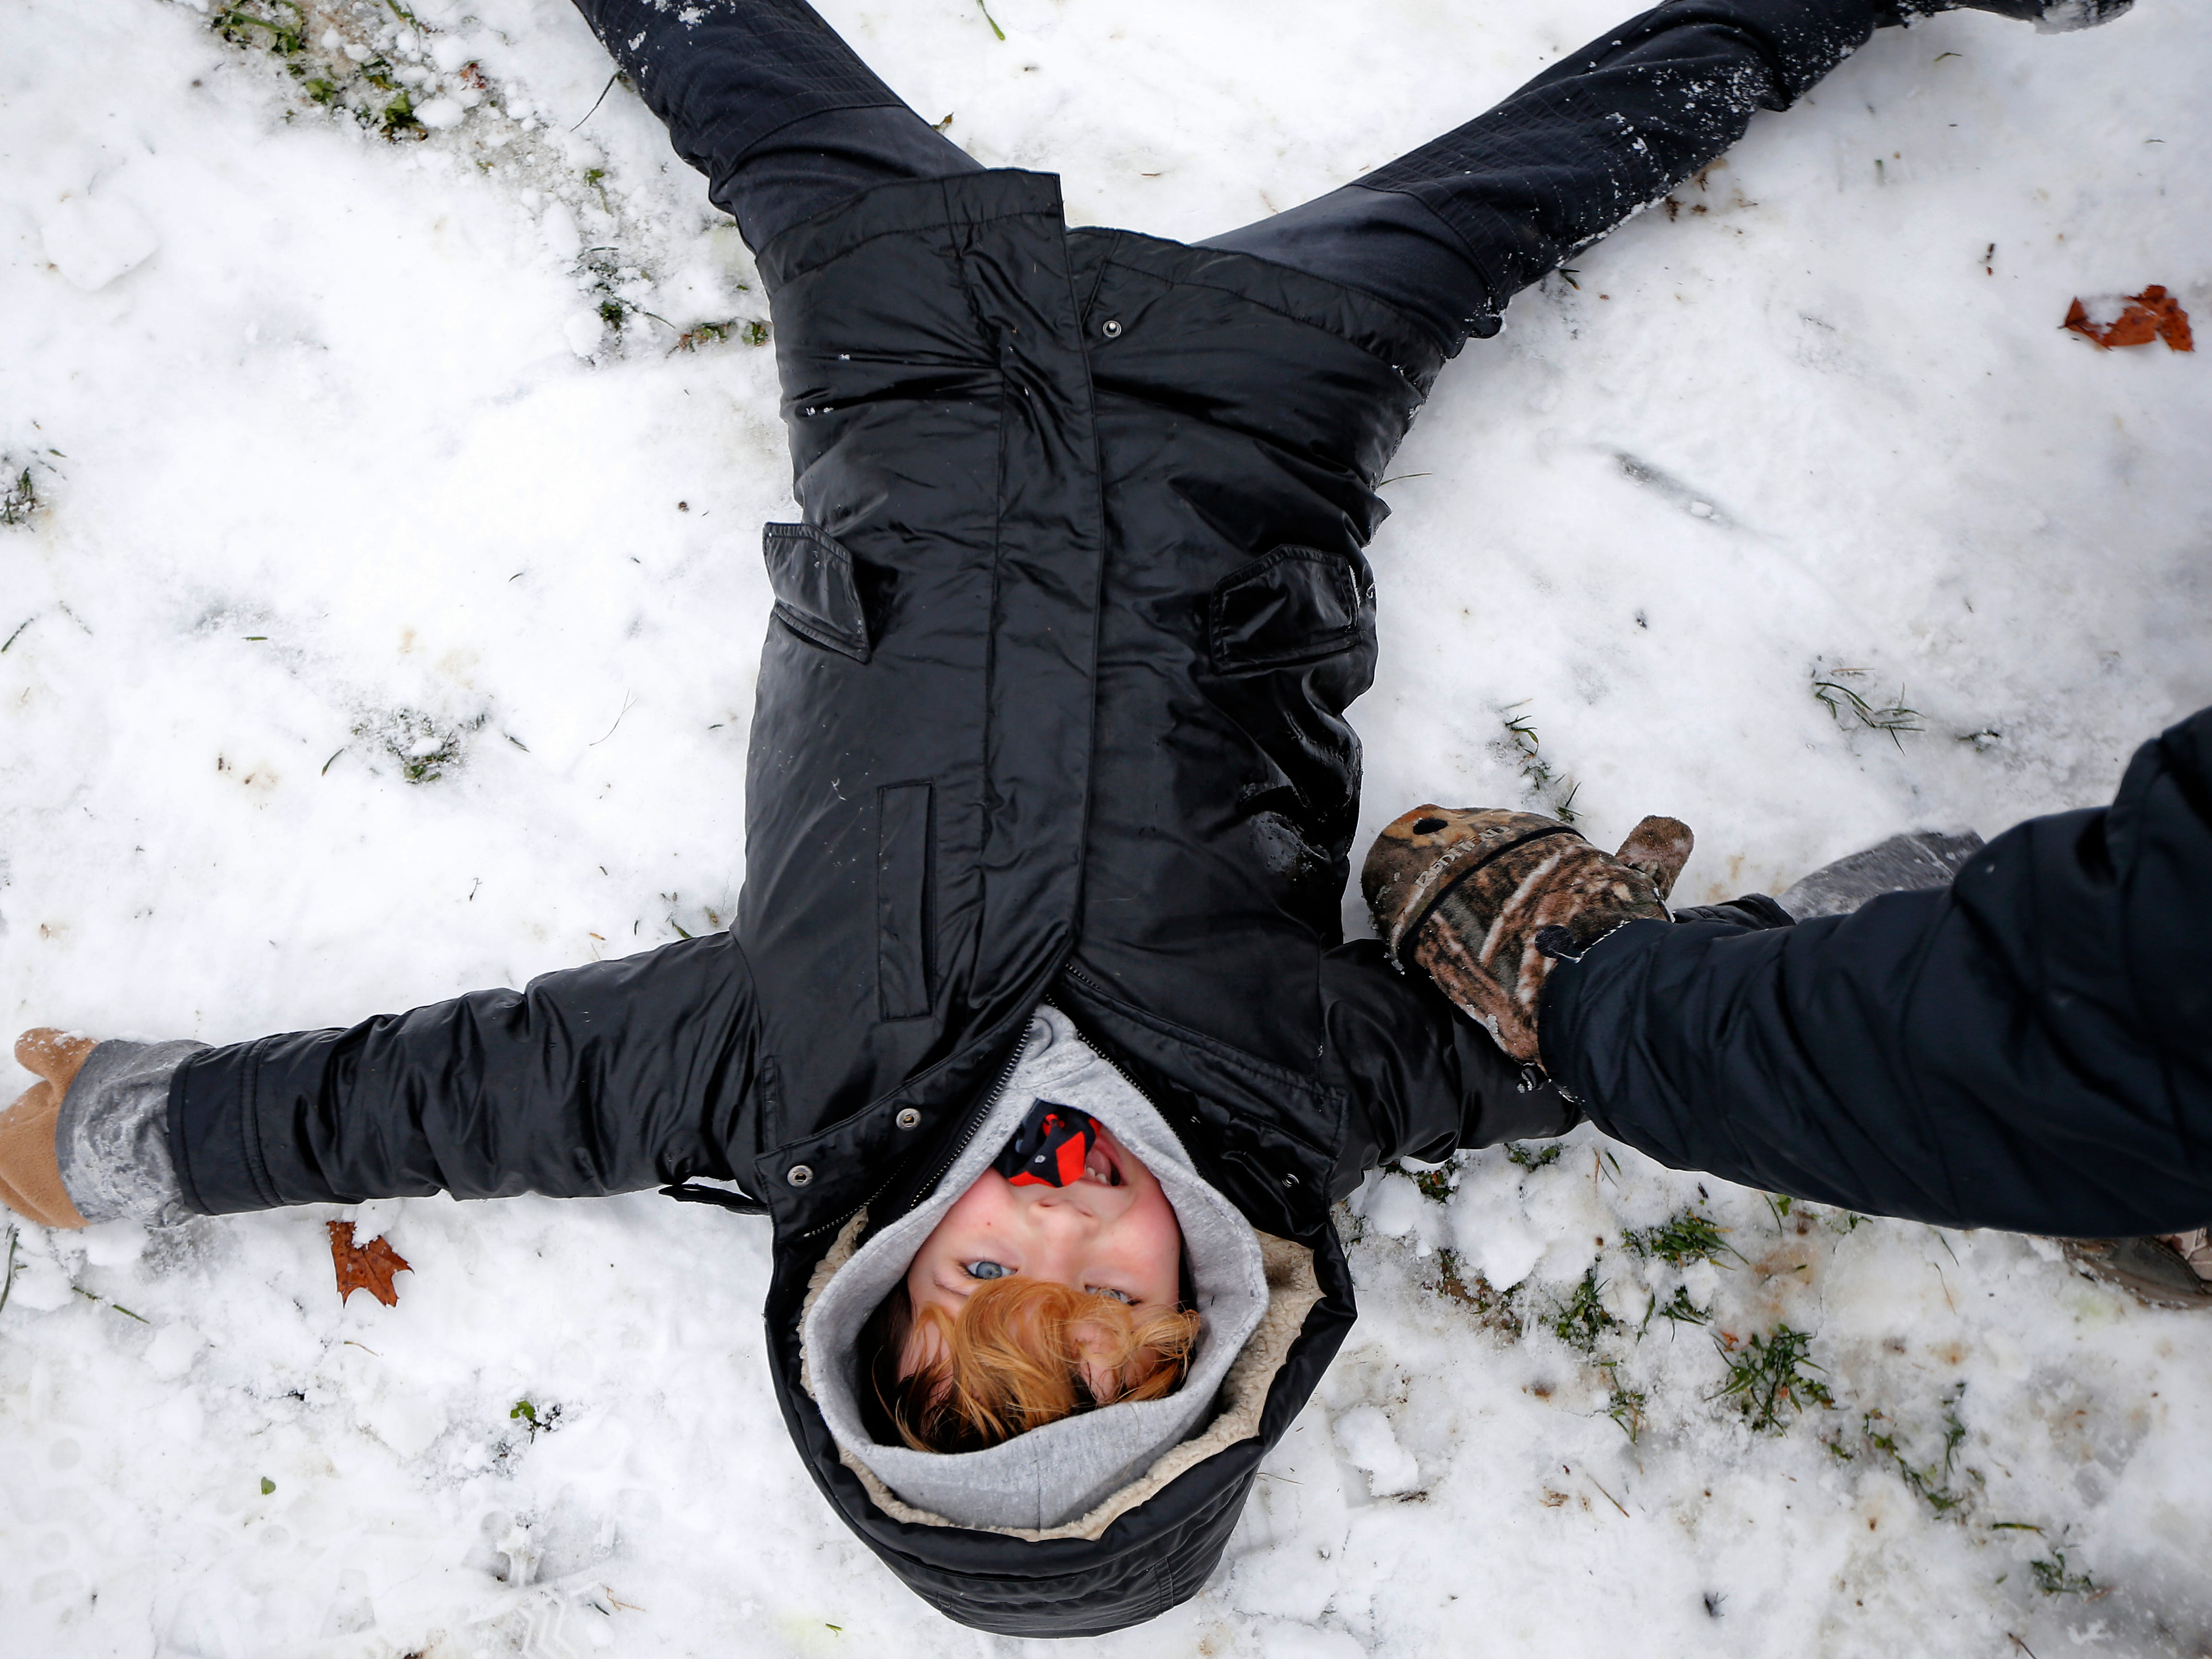 Wolfgang Steinke, 6, of Mt. Lookout, giggles and creates a snow angel as his dad, Adam Steike, attempts to pick him up at the bottom of the sledding hill at Ault Park in the Hyde Park neighborhood of Cincinnati on Saturday, Jan. 12, 2019. A winter storm warning remained in effect until 7 a.m. Sunday after the region experienced the first snowfall of 2019.